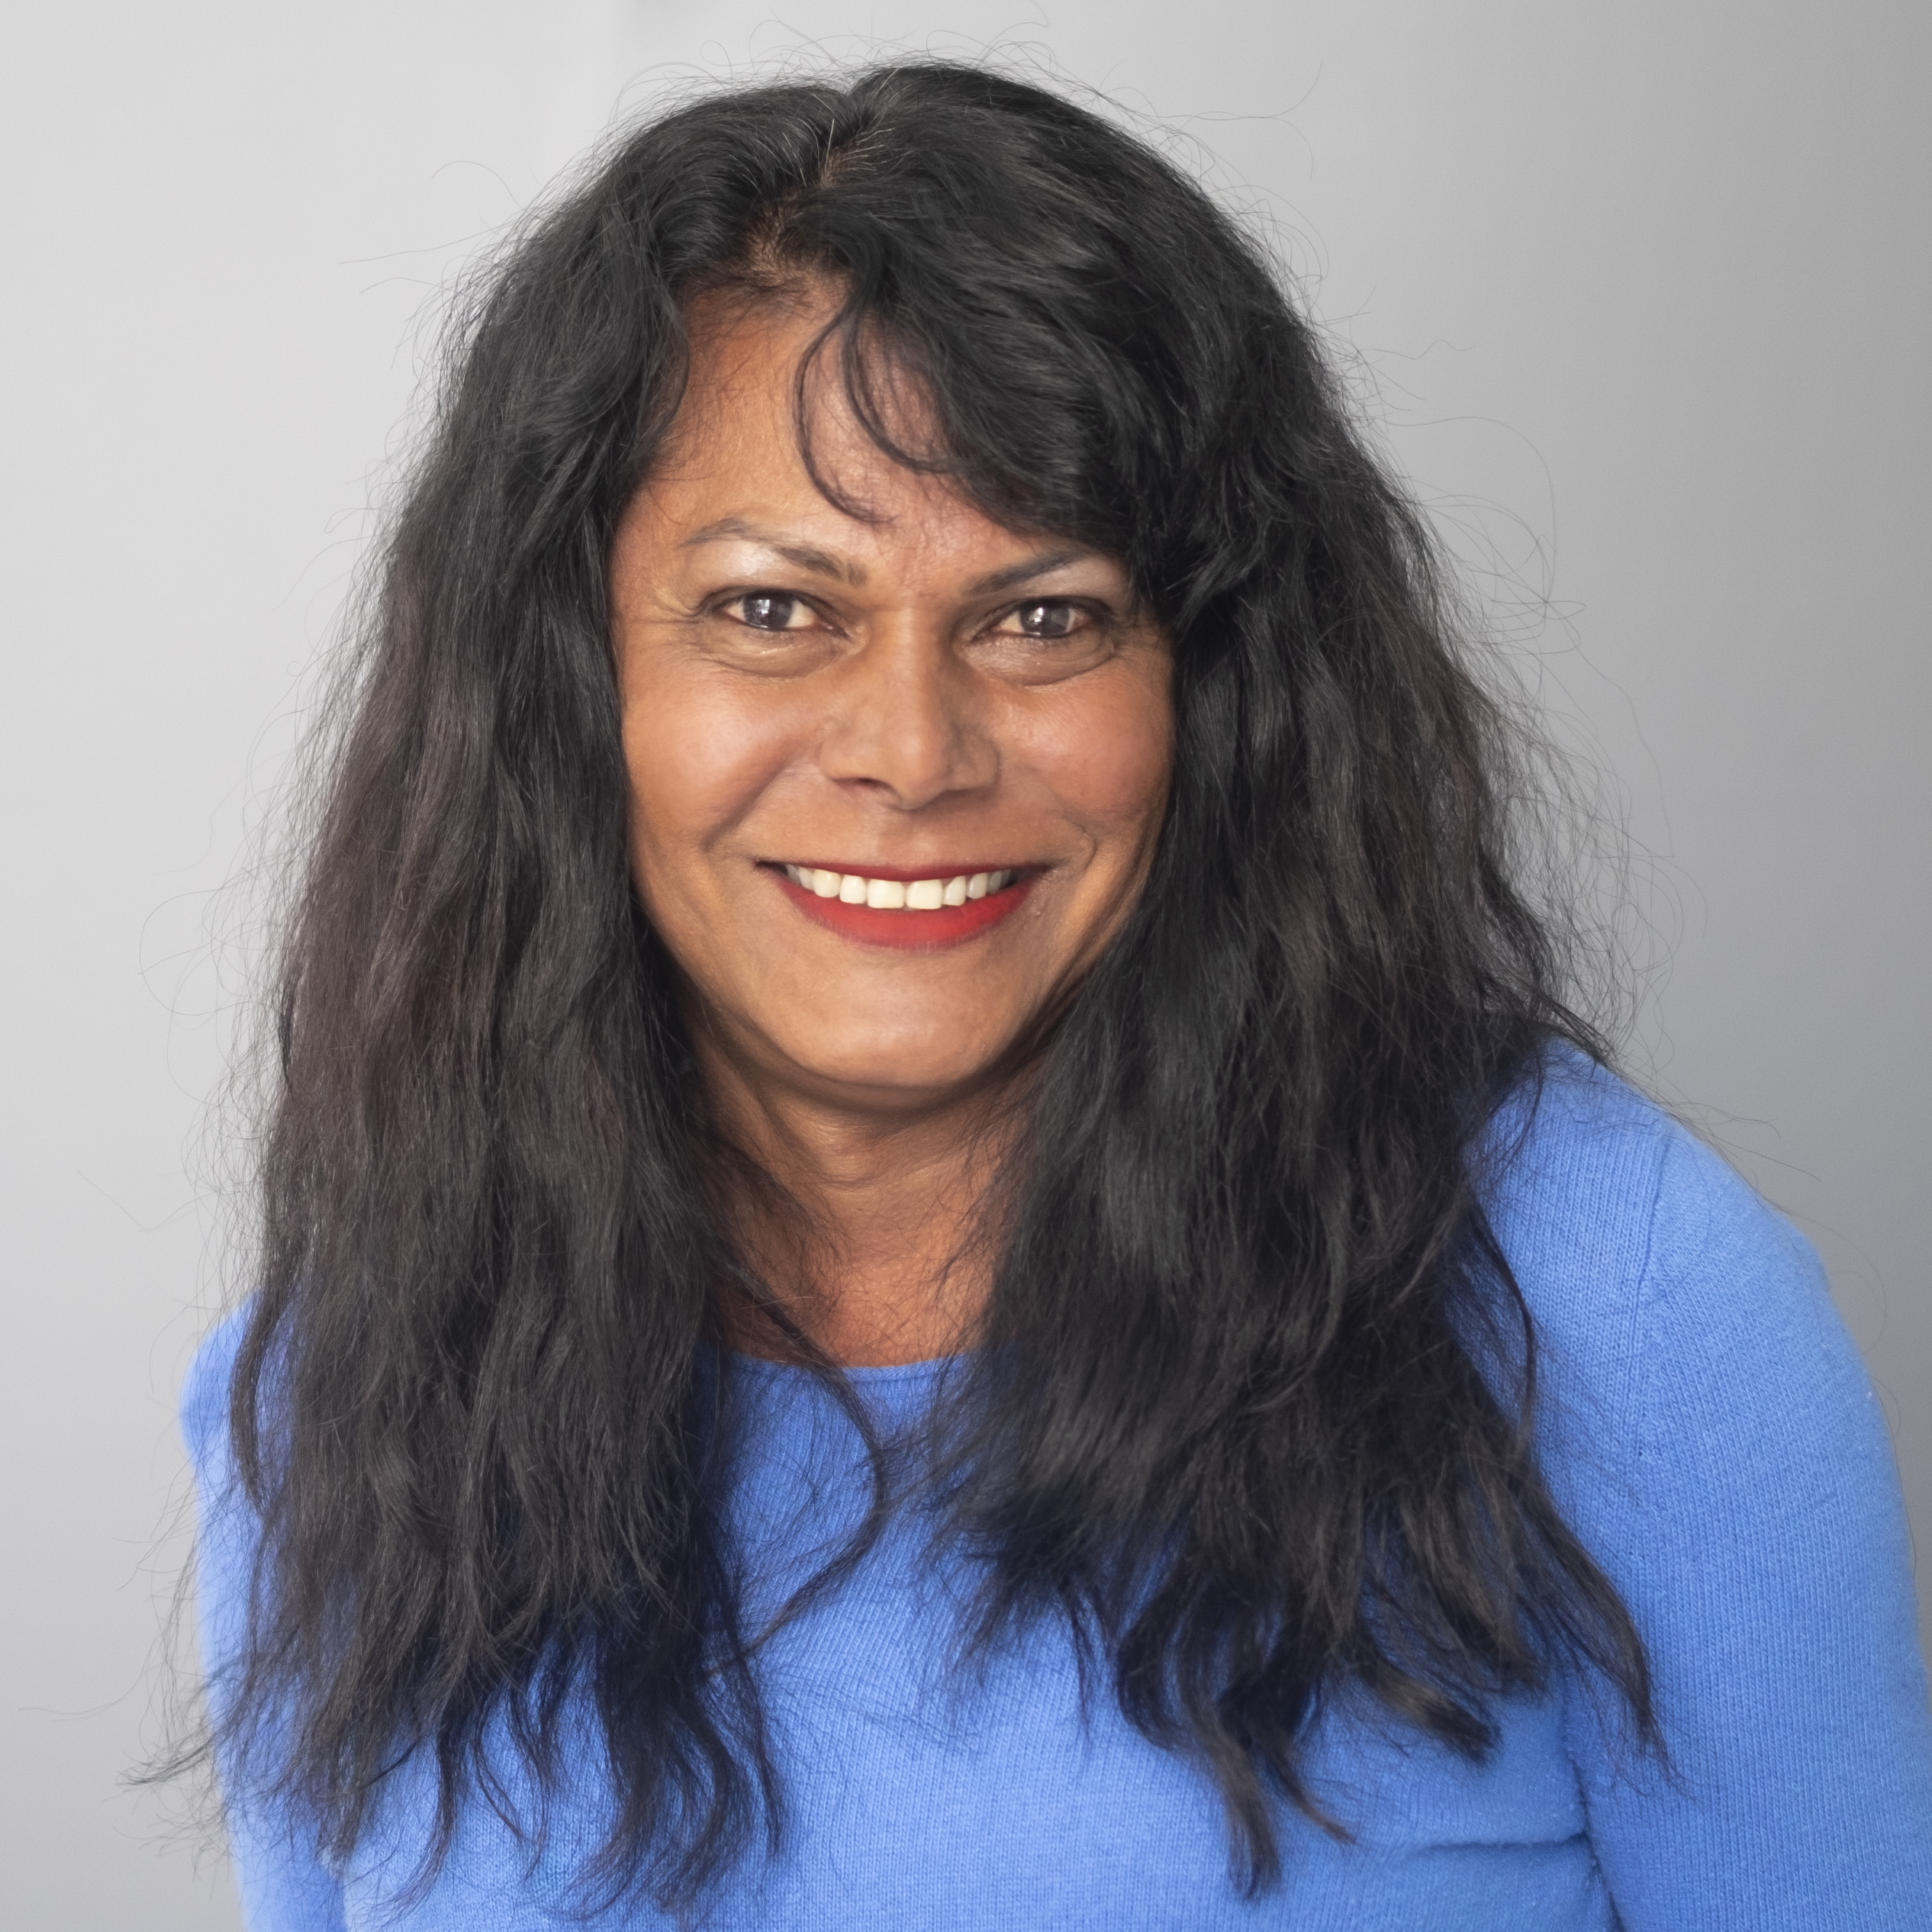 Yasmeen Persad's smiling portrait, wearing blue shirt against grey background.